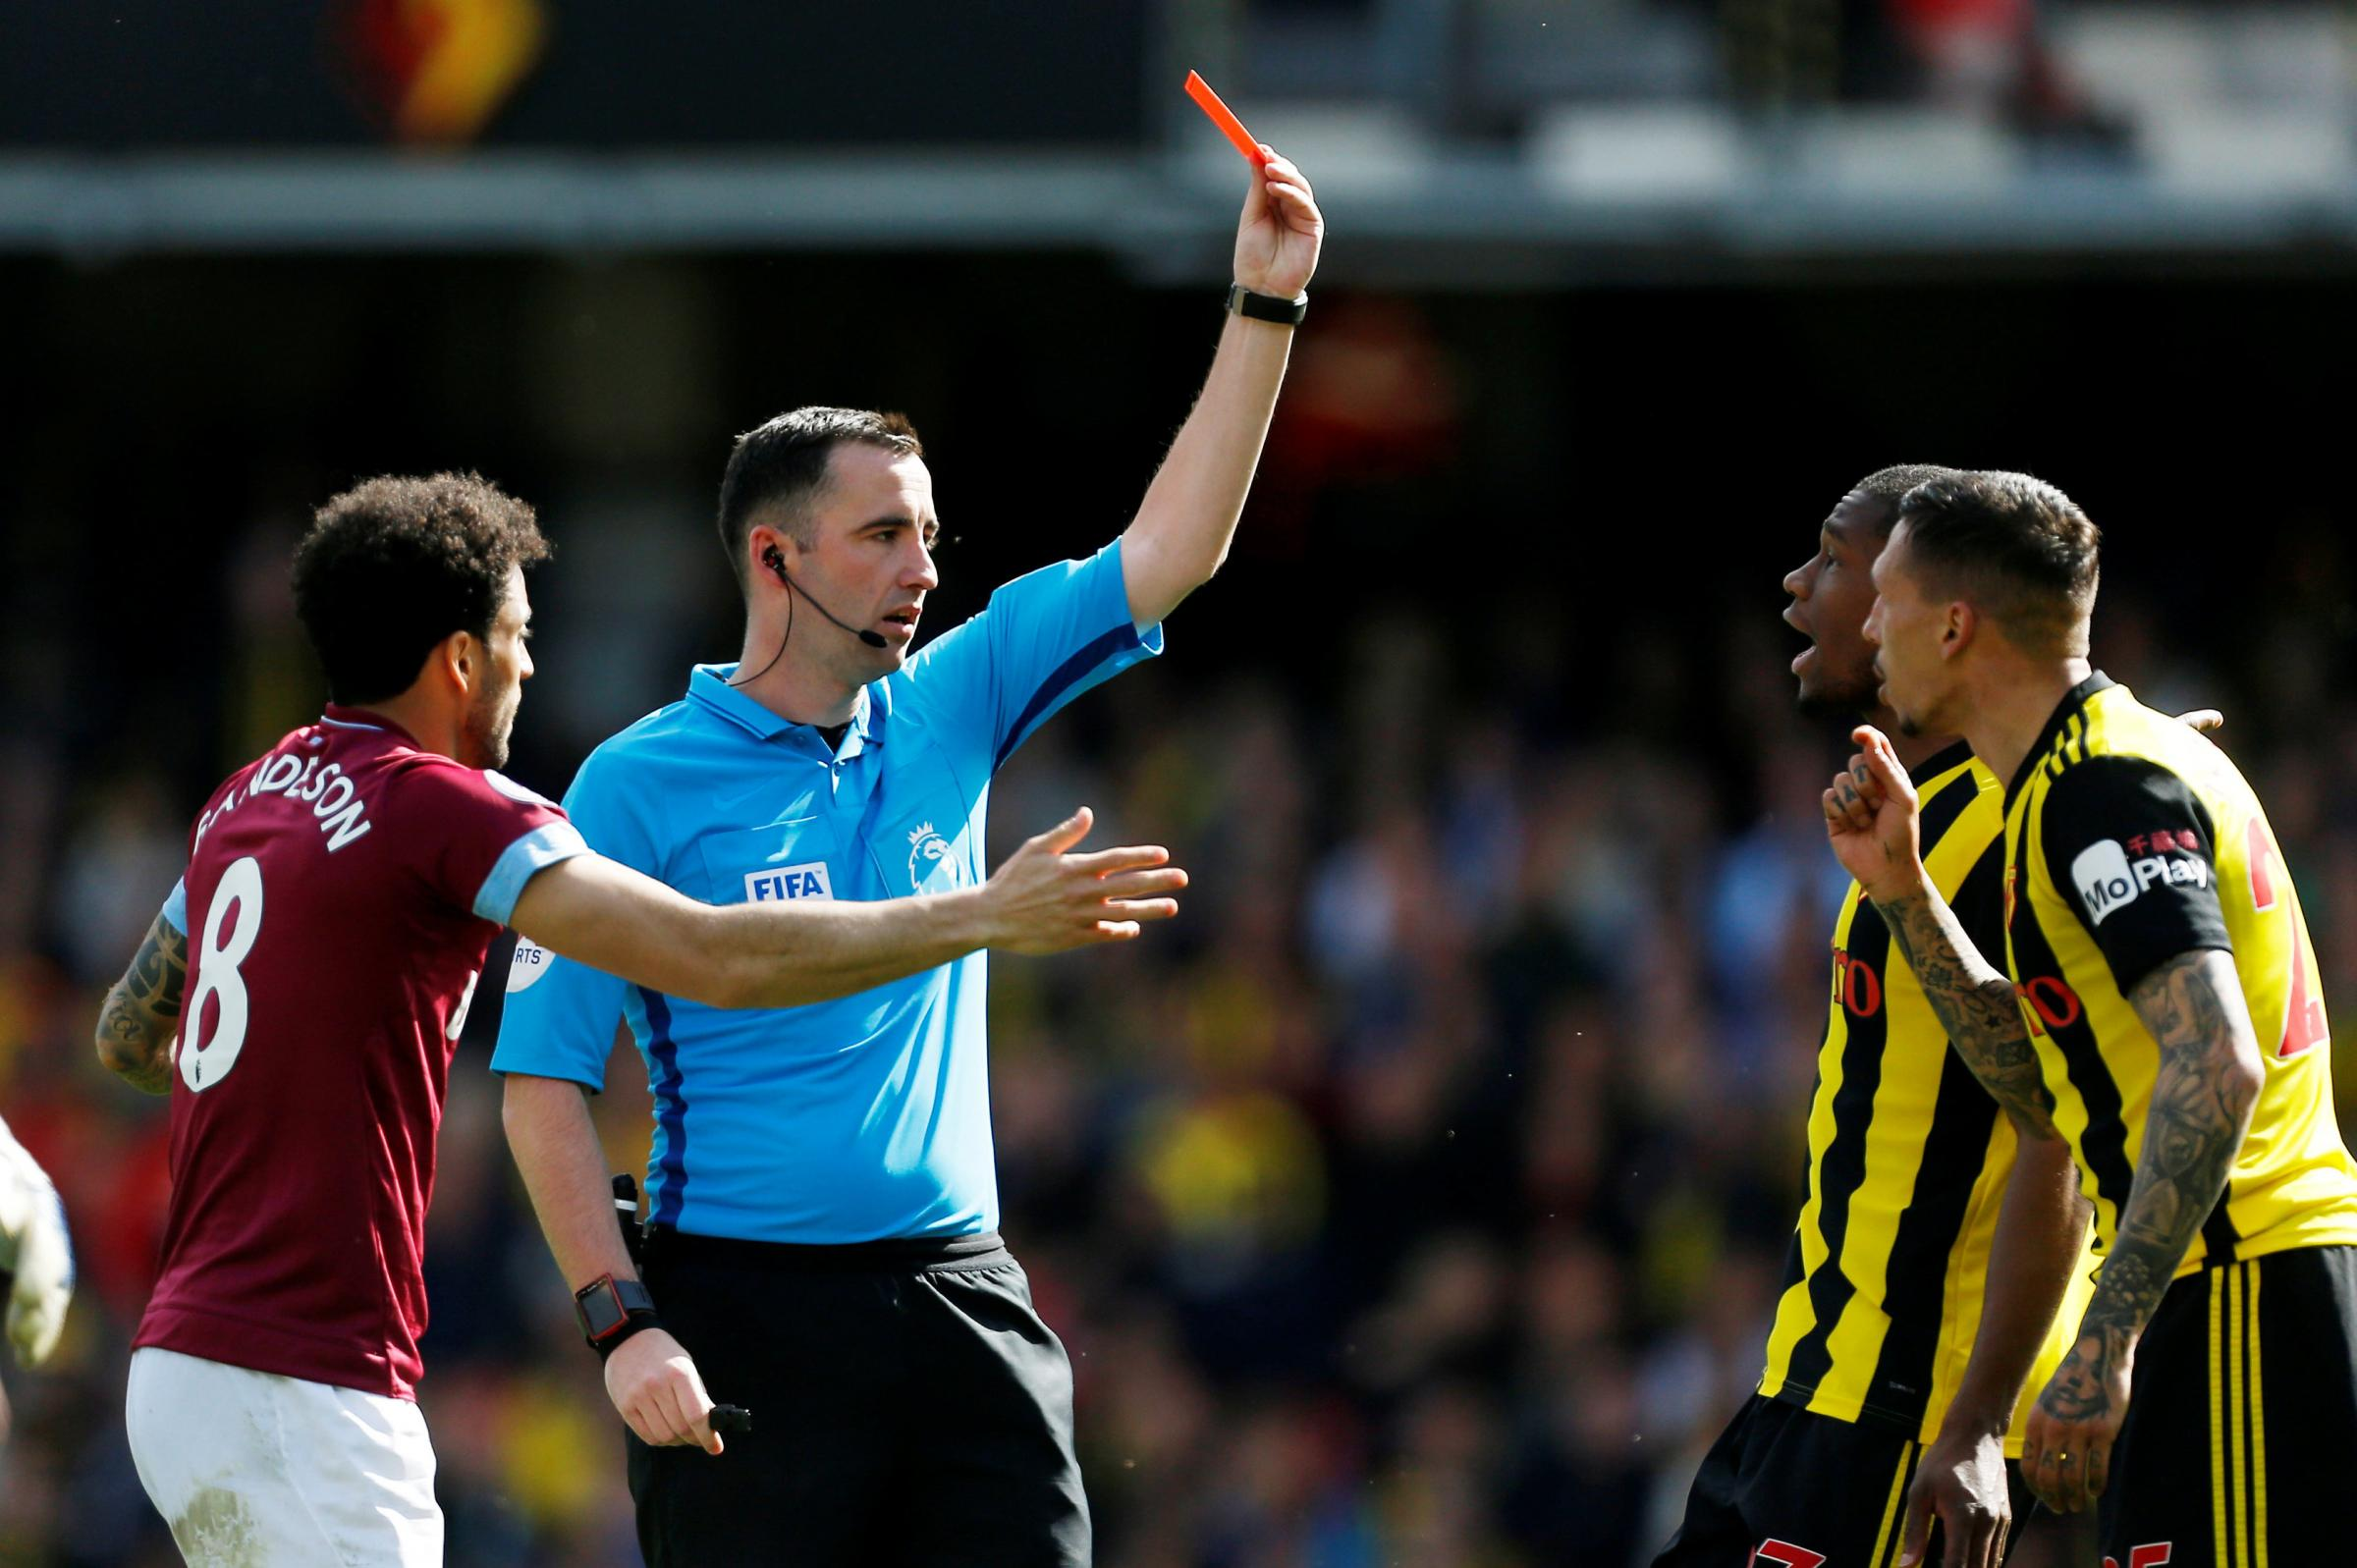 Watford vs West Ham United: Chris Kavanagh again appointed referee for Premier League clash